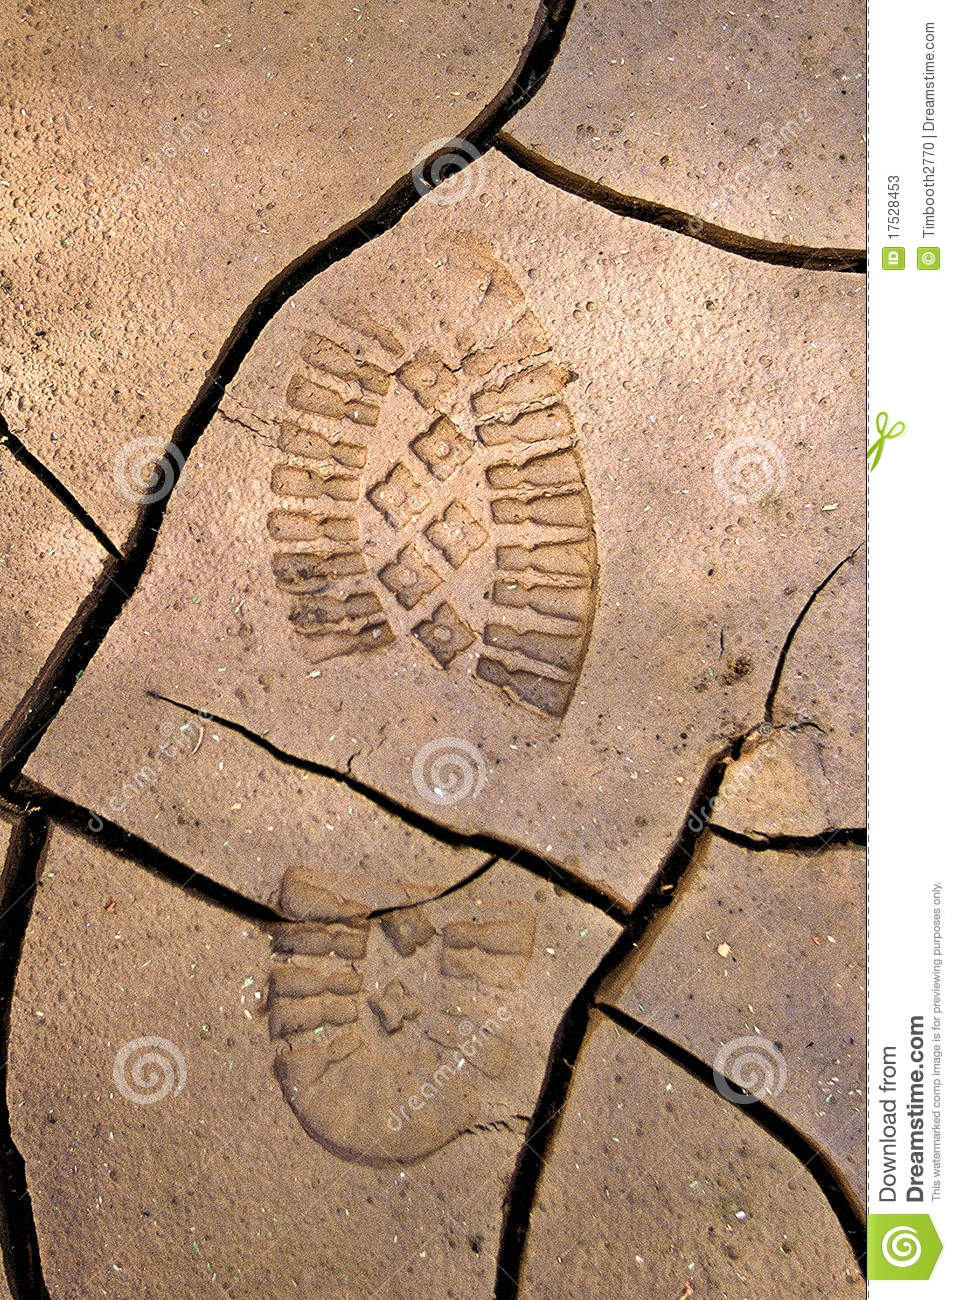 Bootprint in cracked earth